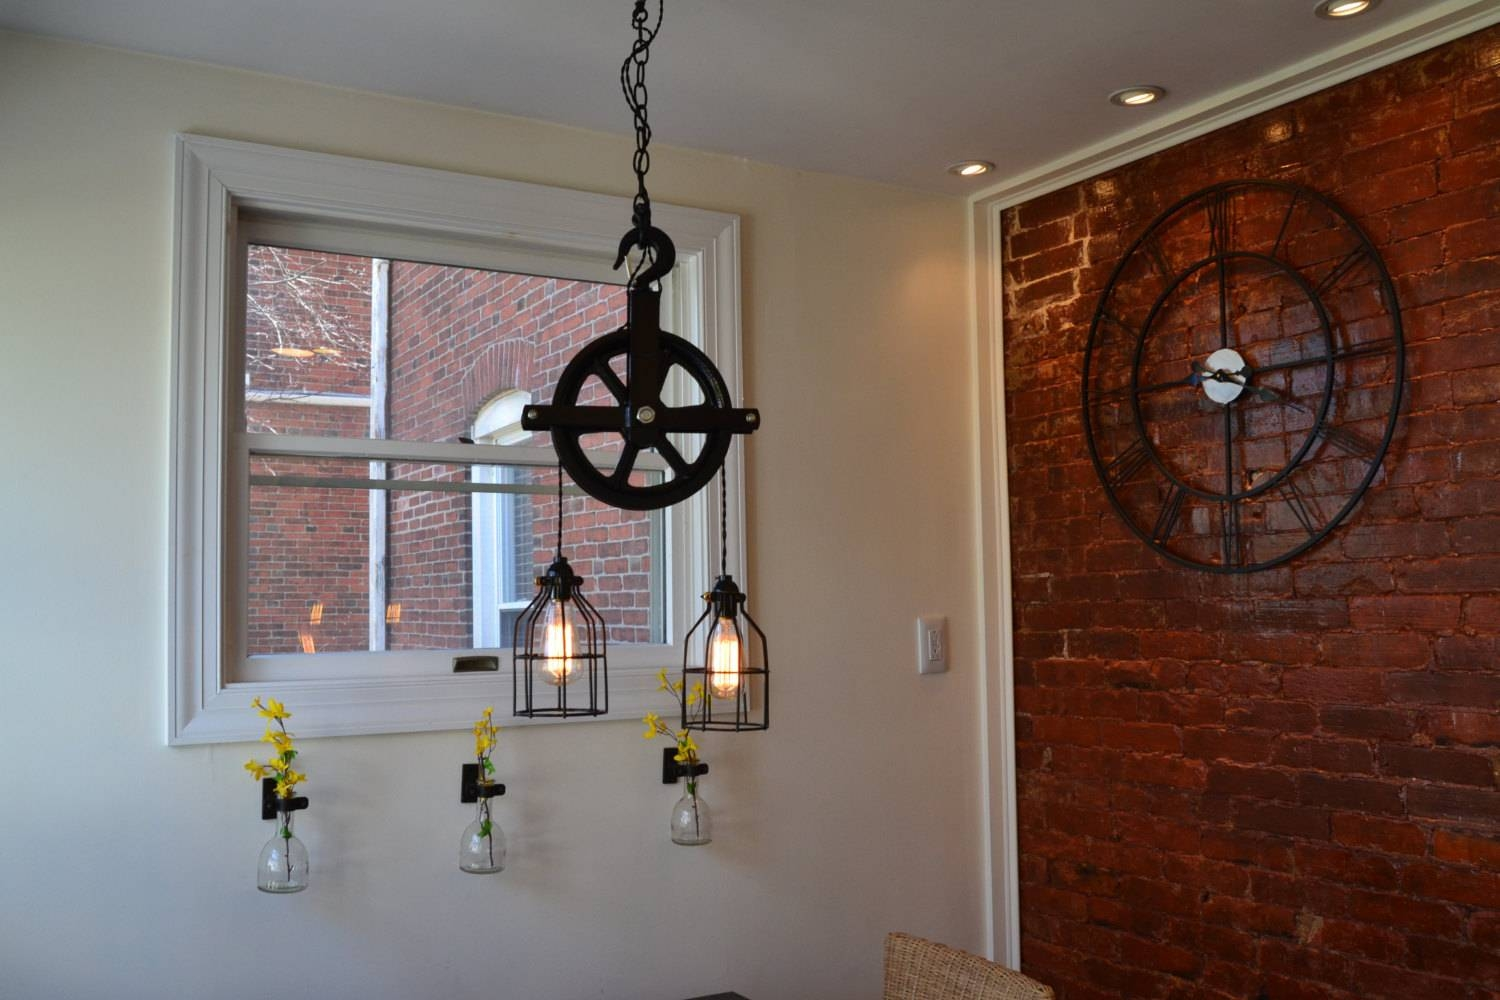 Lighting Ceiling Fixture Ceiling Light Industrial Light with regard to Pulley Lights Fixtures (Image 8 of 15)